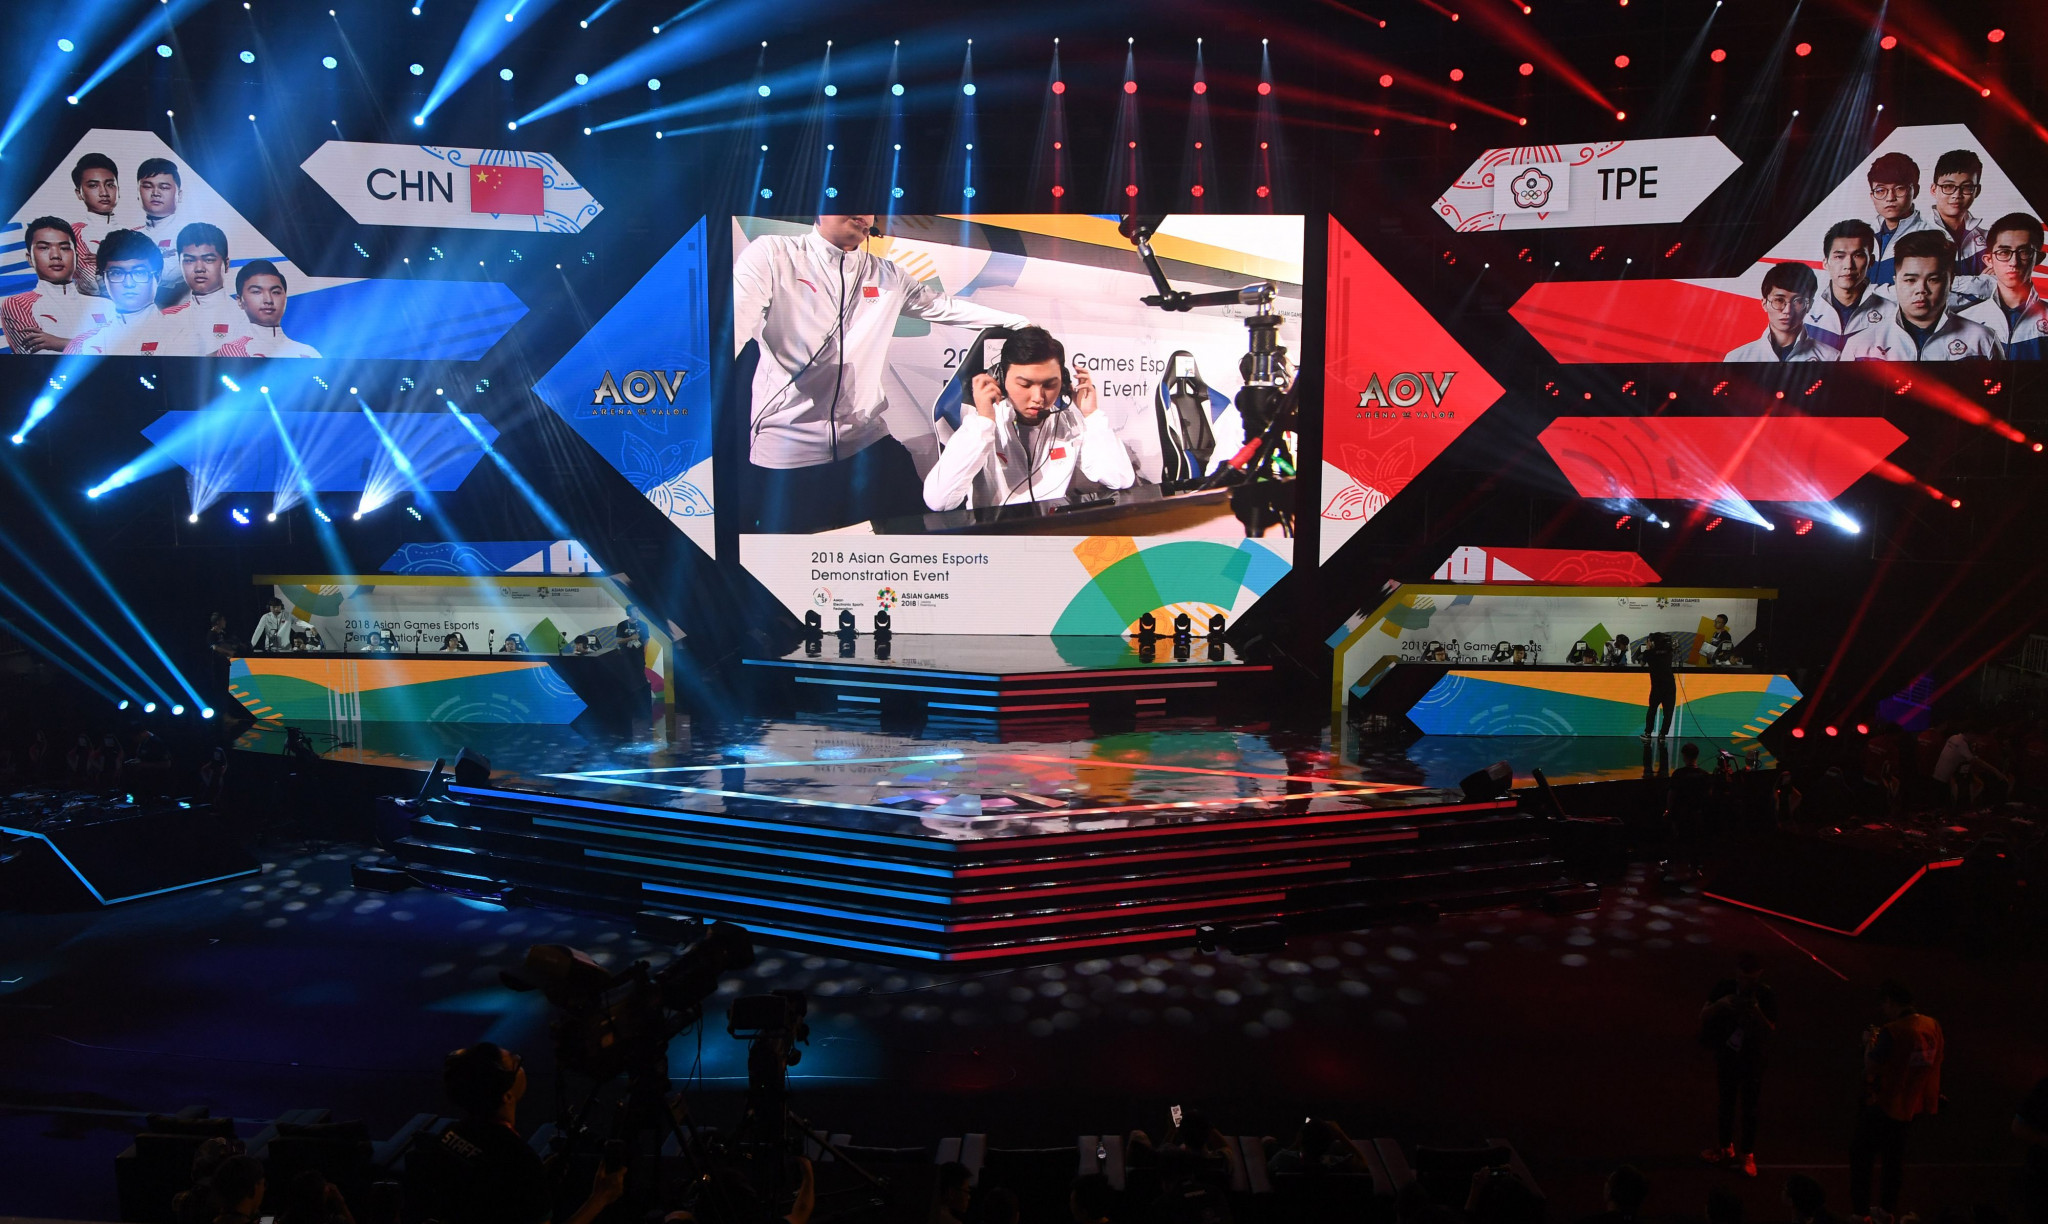 Sự kiện Arena Of Valor World Cup 2019